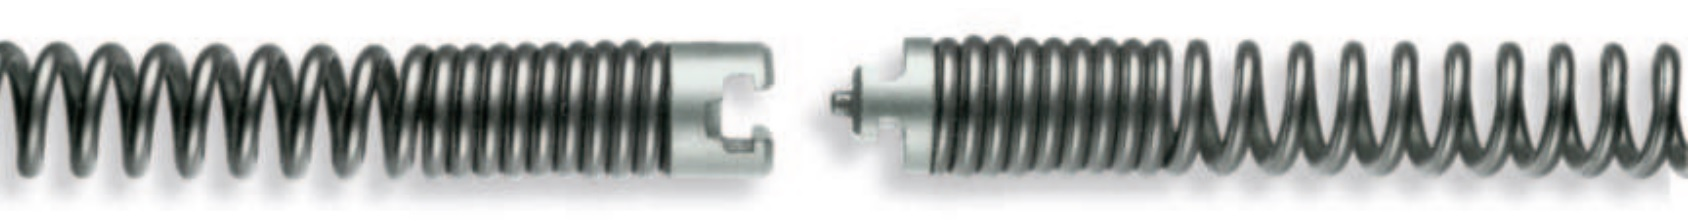 Standard spiral with coupling 16 - 32 mm, up to 4.5 m